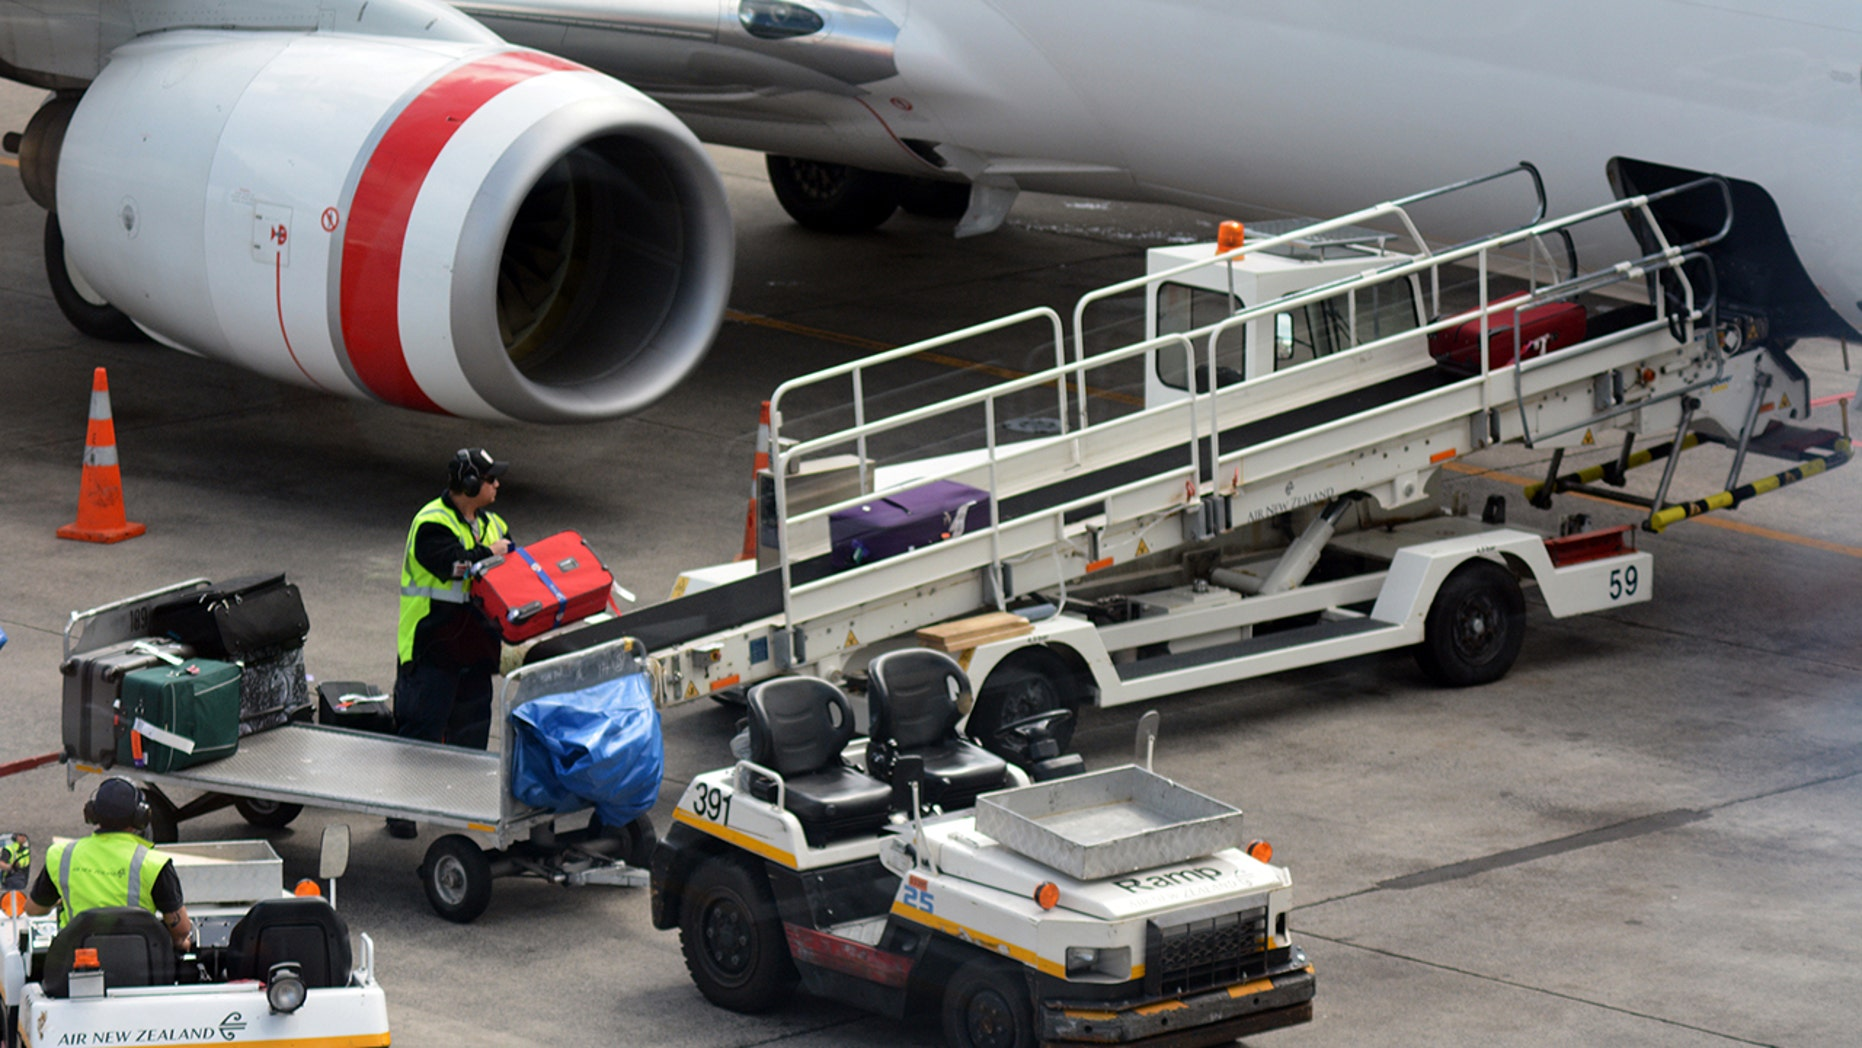 An airport worker has been arrested and charged for stealing contents out of passengers' checked luggage.